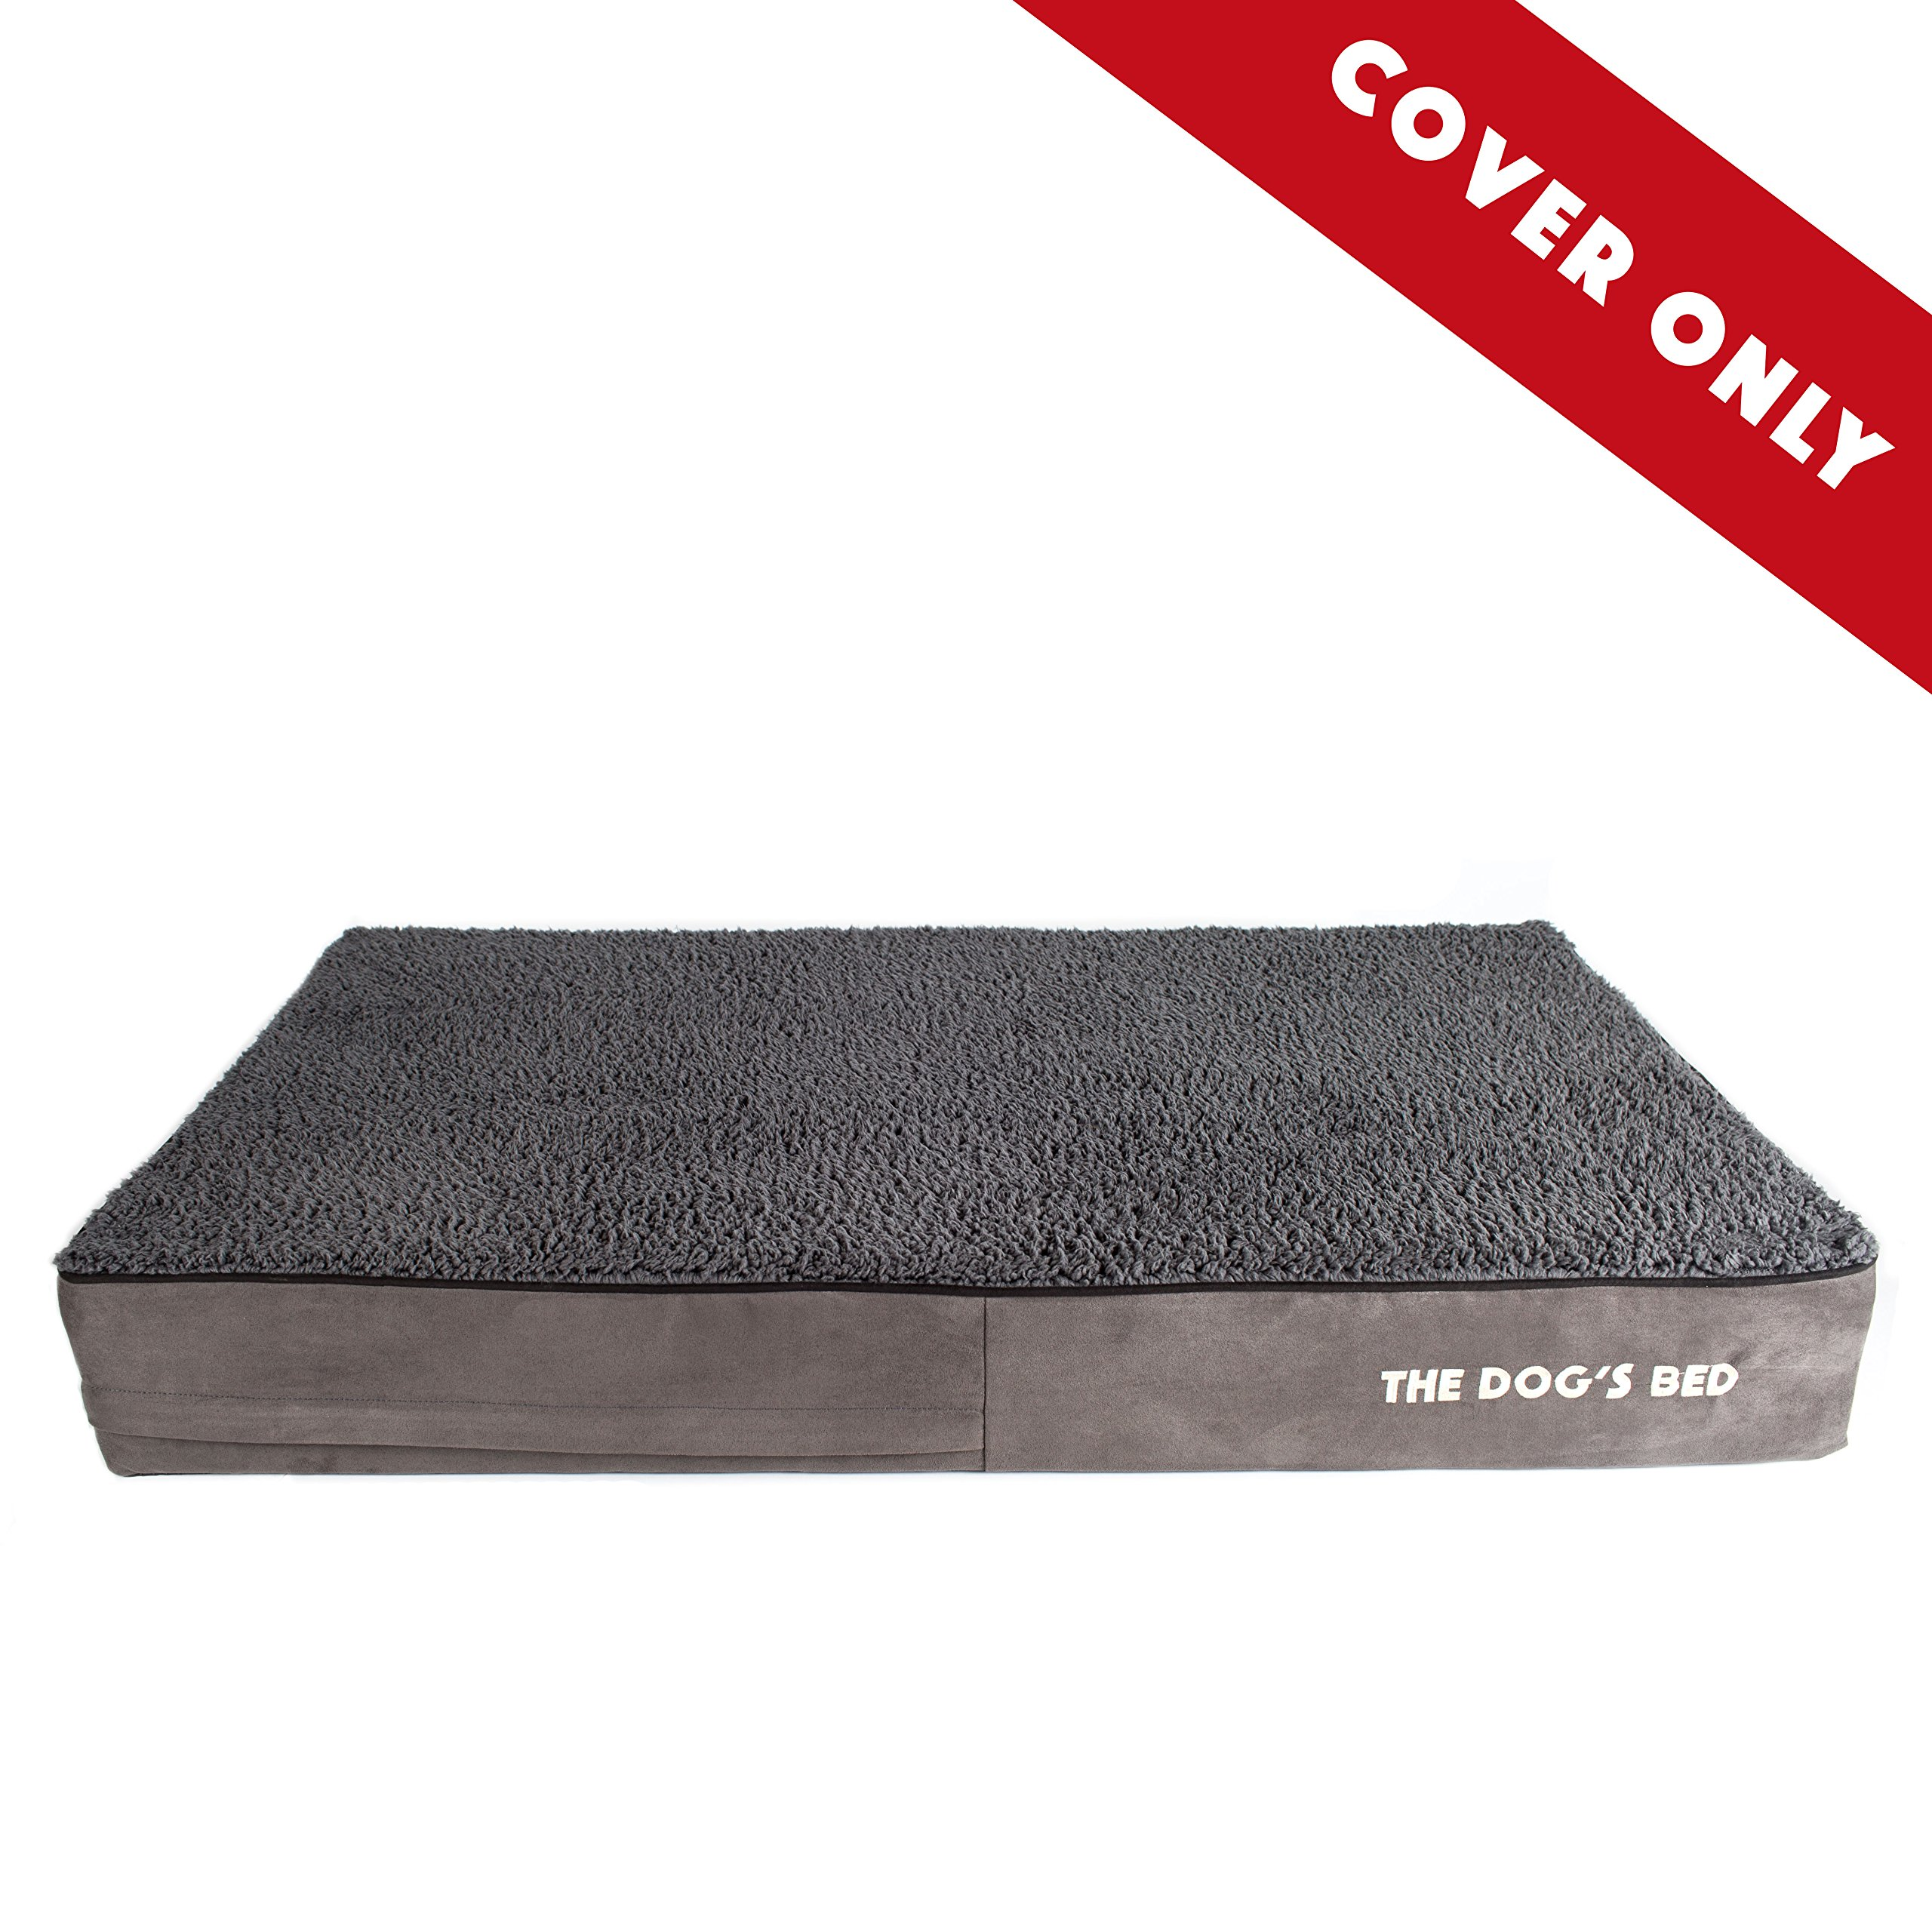 Replacement Outer Cover ONLY (Outer Cover ONLY - NO Bed, NO Waterproof Inner) for The Dog's Bed, Washable Quality Plush Fabric, Extra Large 46'' x 28'' x 6'' (Grey Plush)